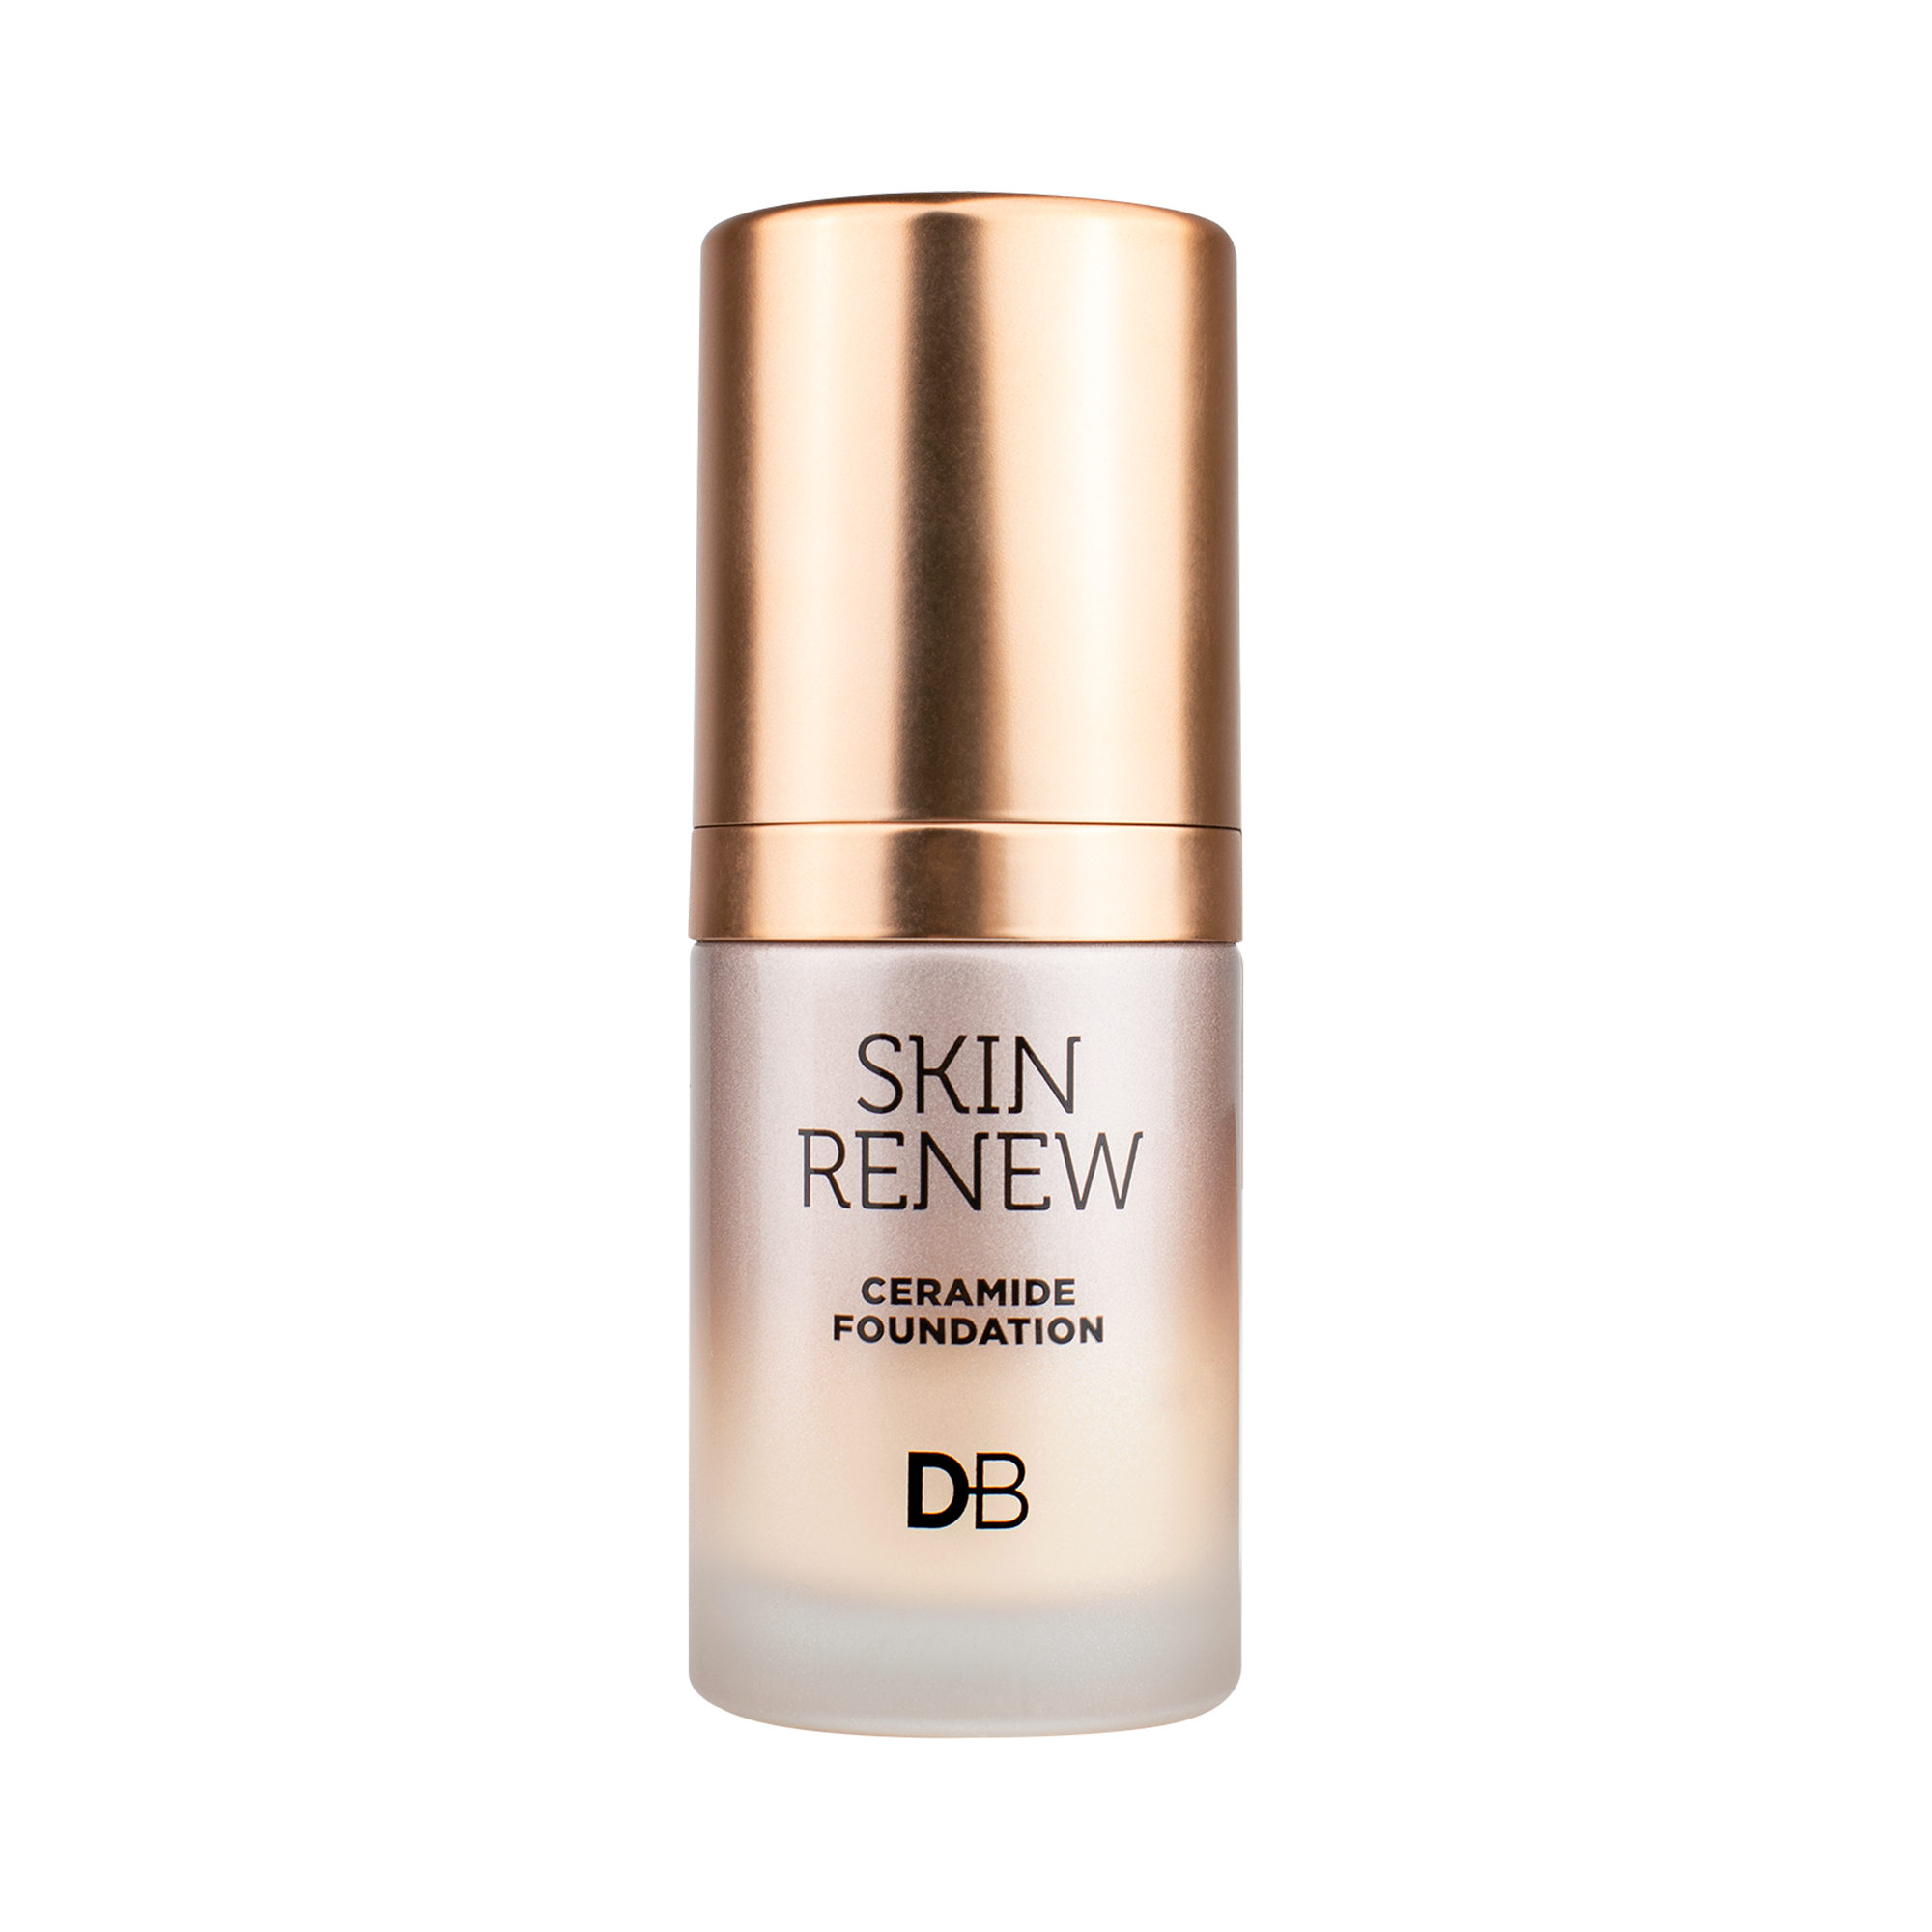 Skin Renew Ceramide Foundation (Porcelain Ivory)